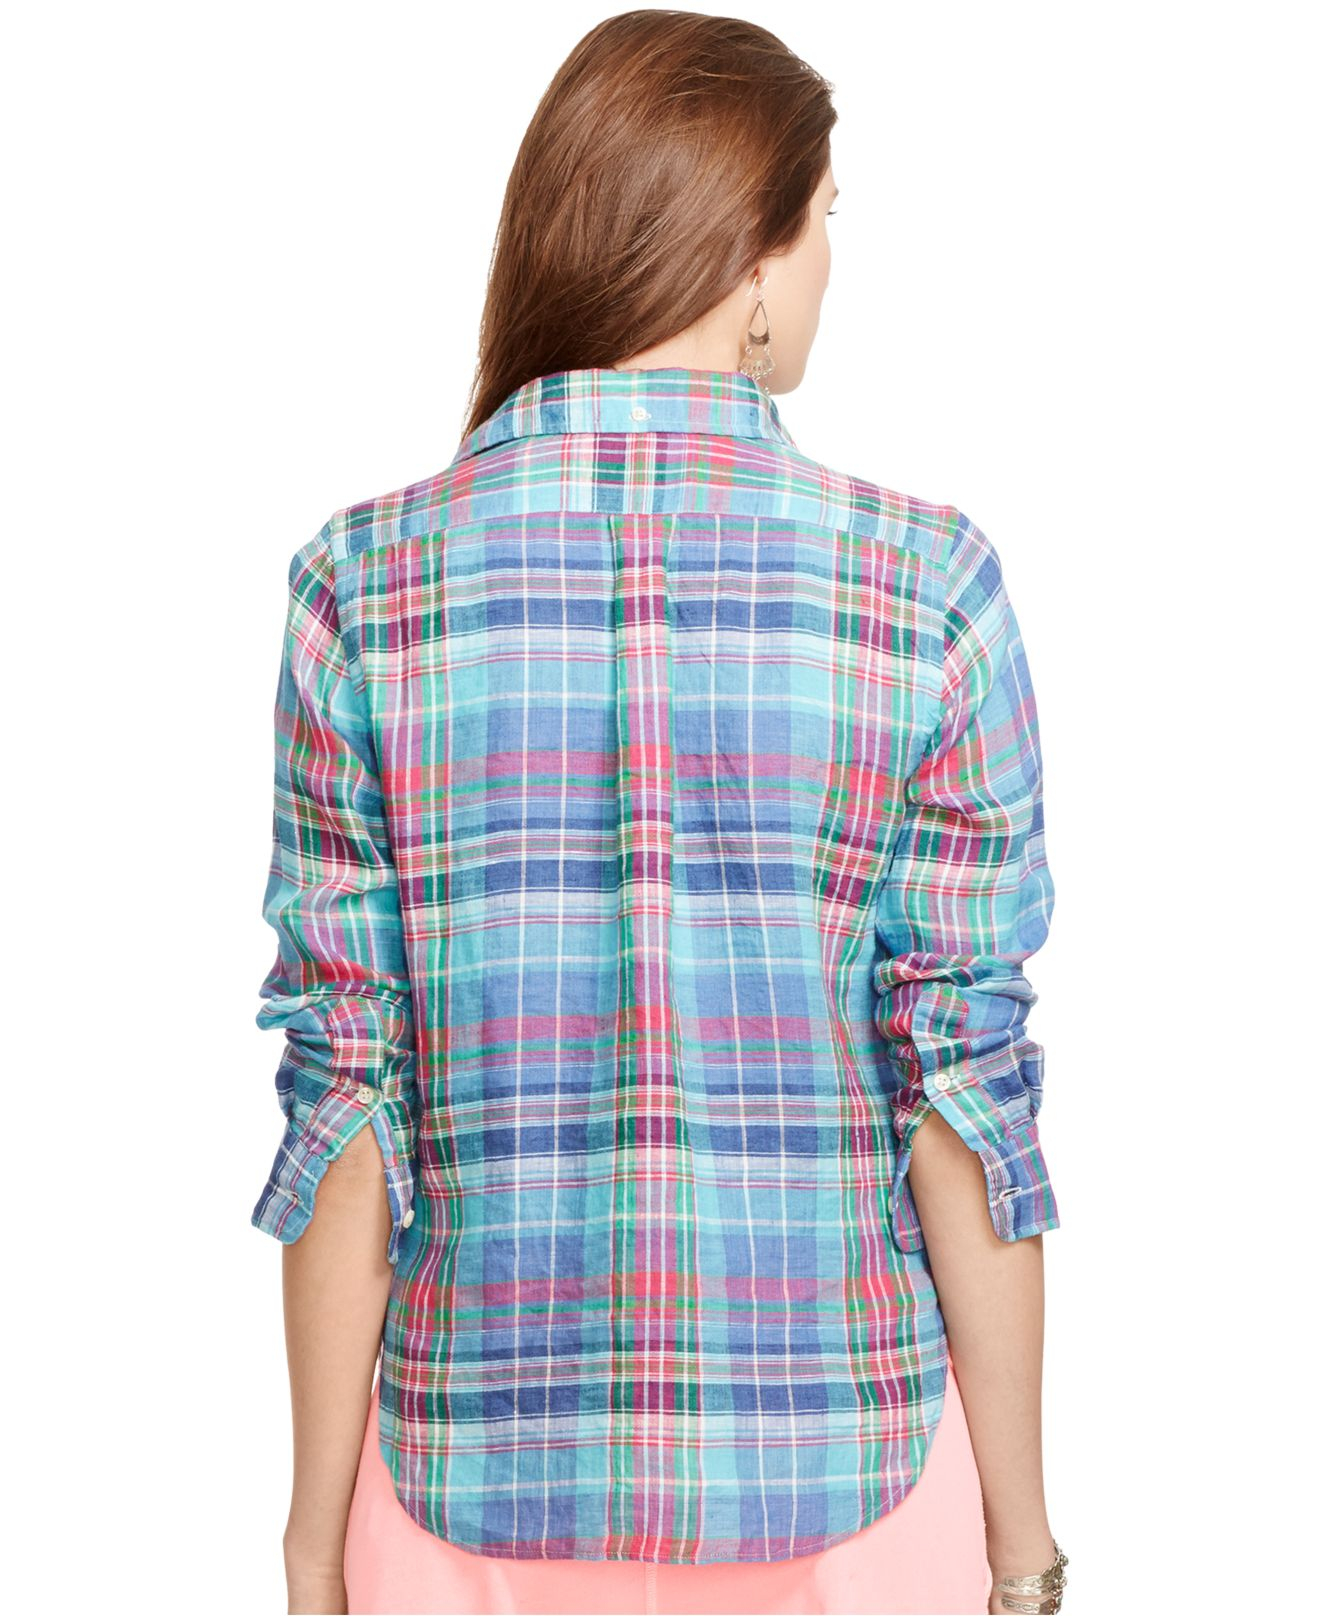 8711ce3e2e8 ... release date lyst polo ralph lauren plaid linen shirt in blue e0570  9ada6